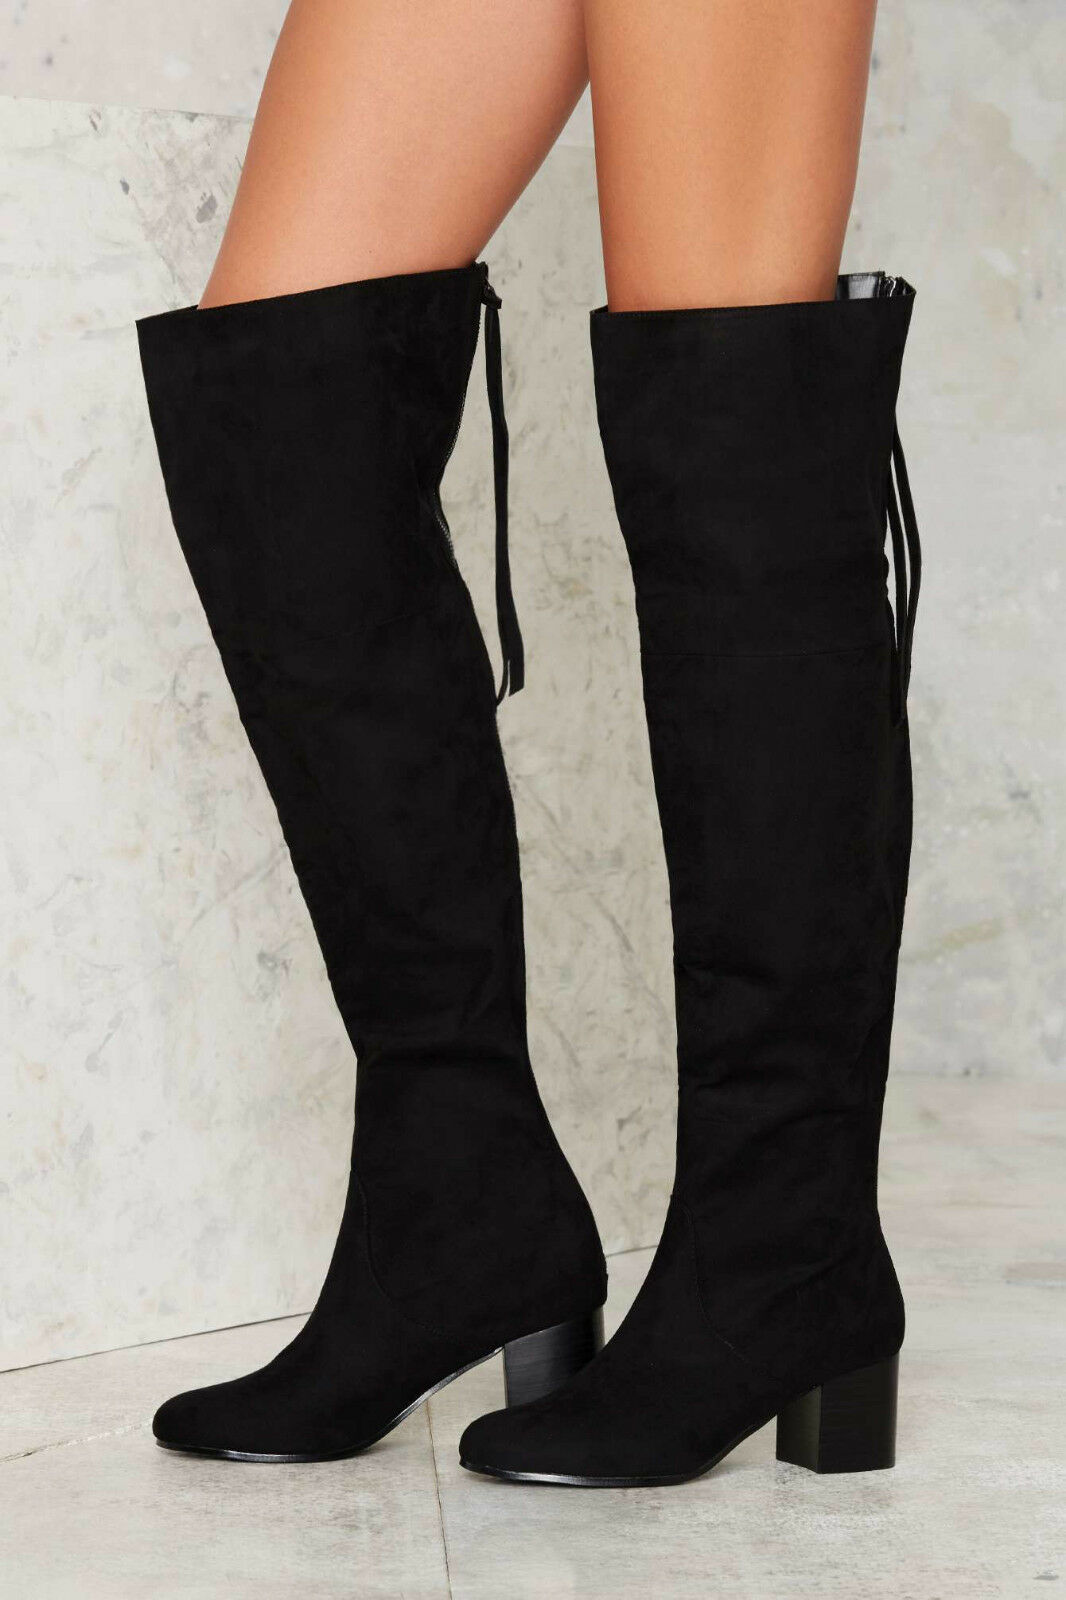 NEU NASTY GAL BLACK OVER THE KNEE ZIP IT UP BOOTS Schuhe SZ 6.5